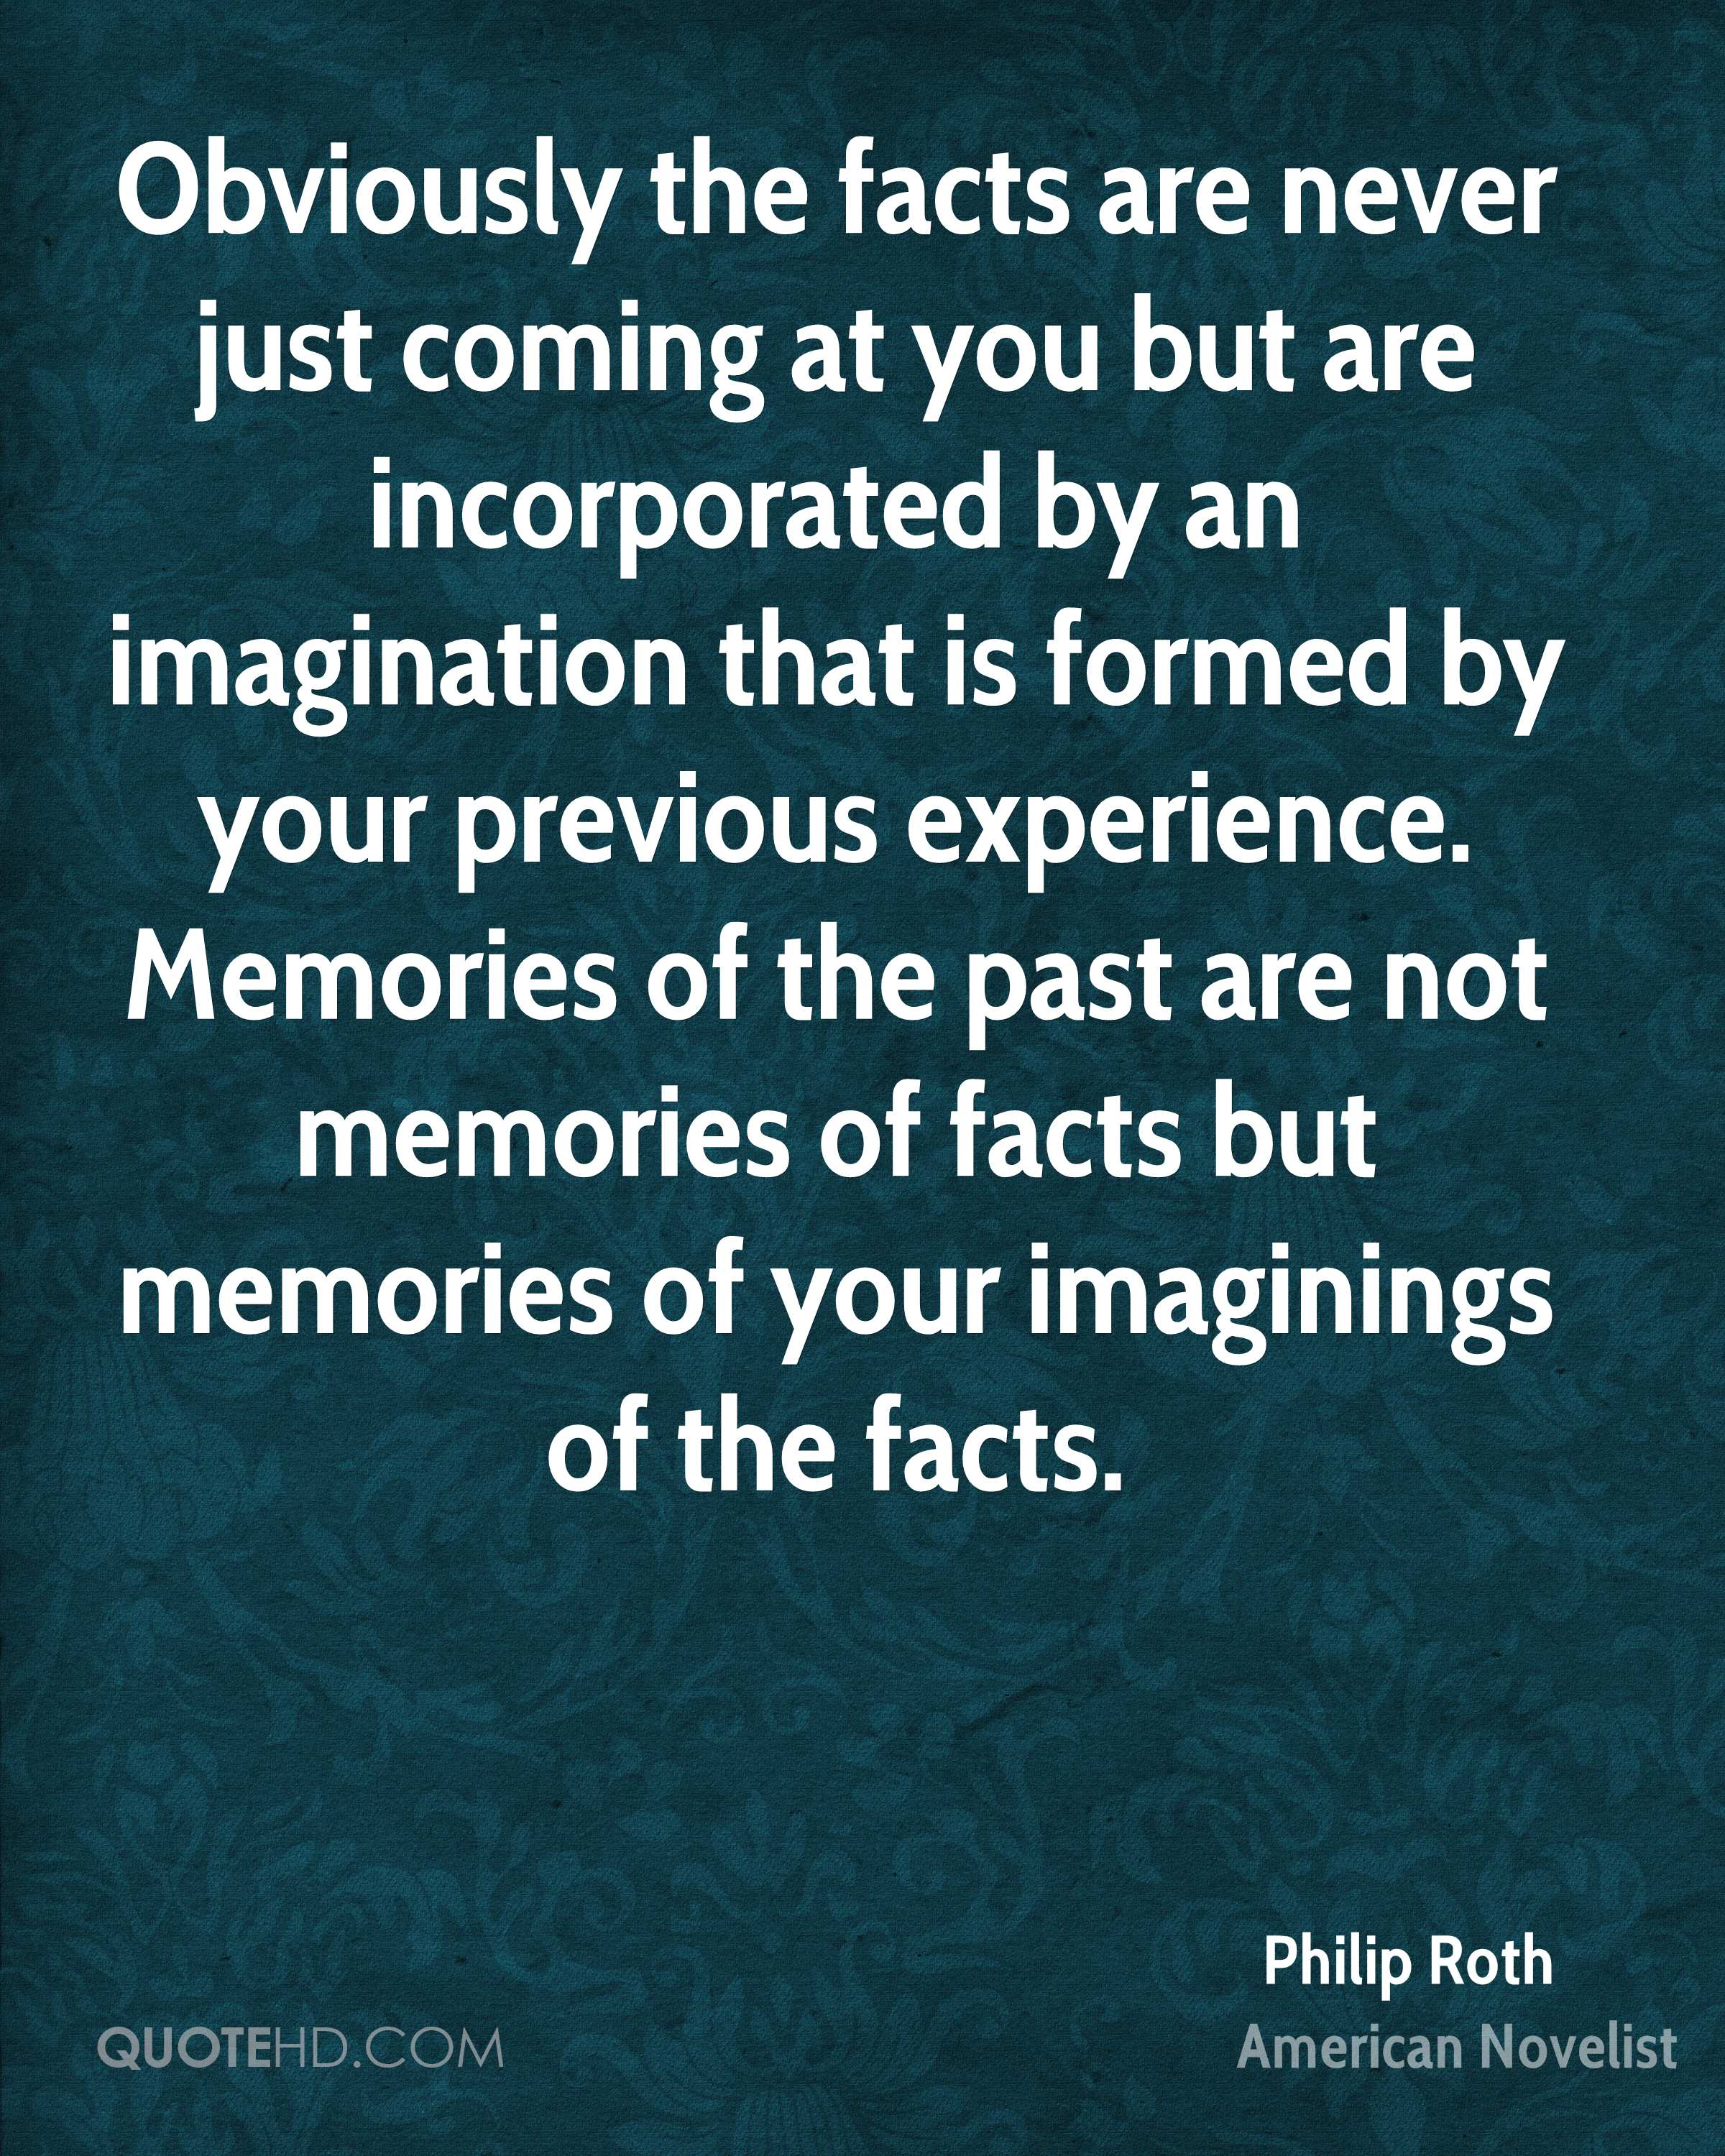 Obviously the facts are never just coming at you but are incorporated by an imagination that is formed by your previous experience. Memories of the past are not memories of facts but memories of your imaginings of the facts.